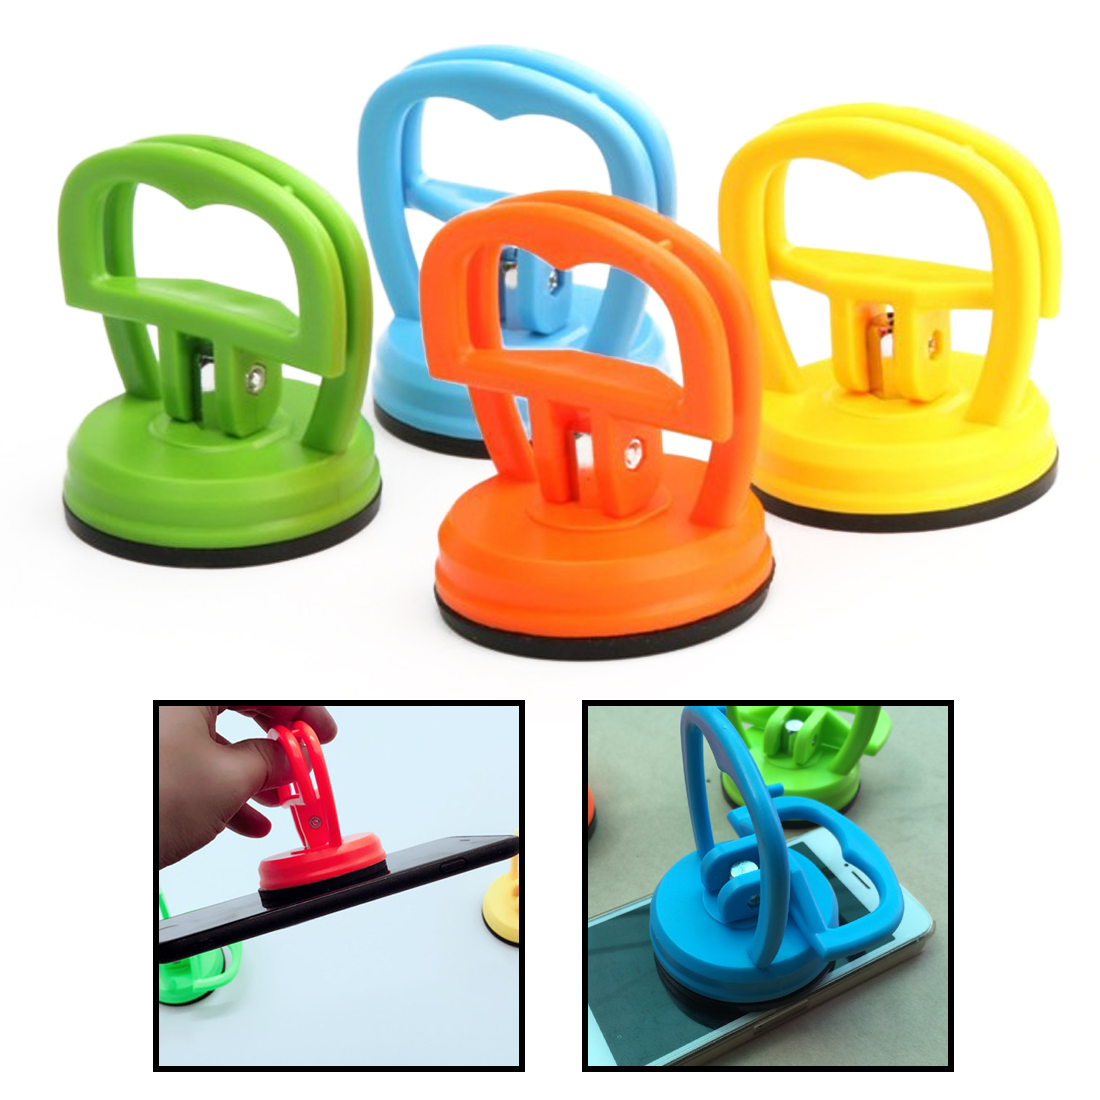 1PC Useful Mini Dent 55mm Repair Puller Car Bodywork Panel Remover Tool Glass Lifter Pull Sucker Suction Home Accessories